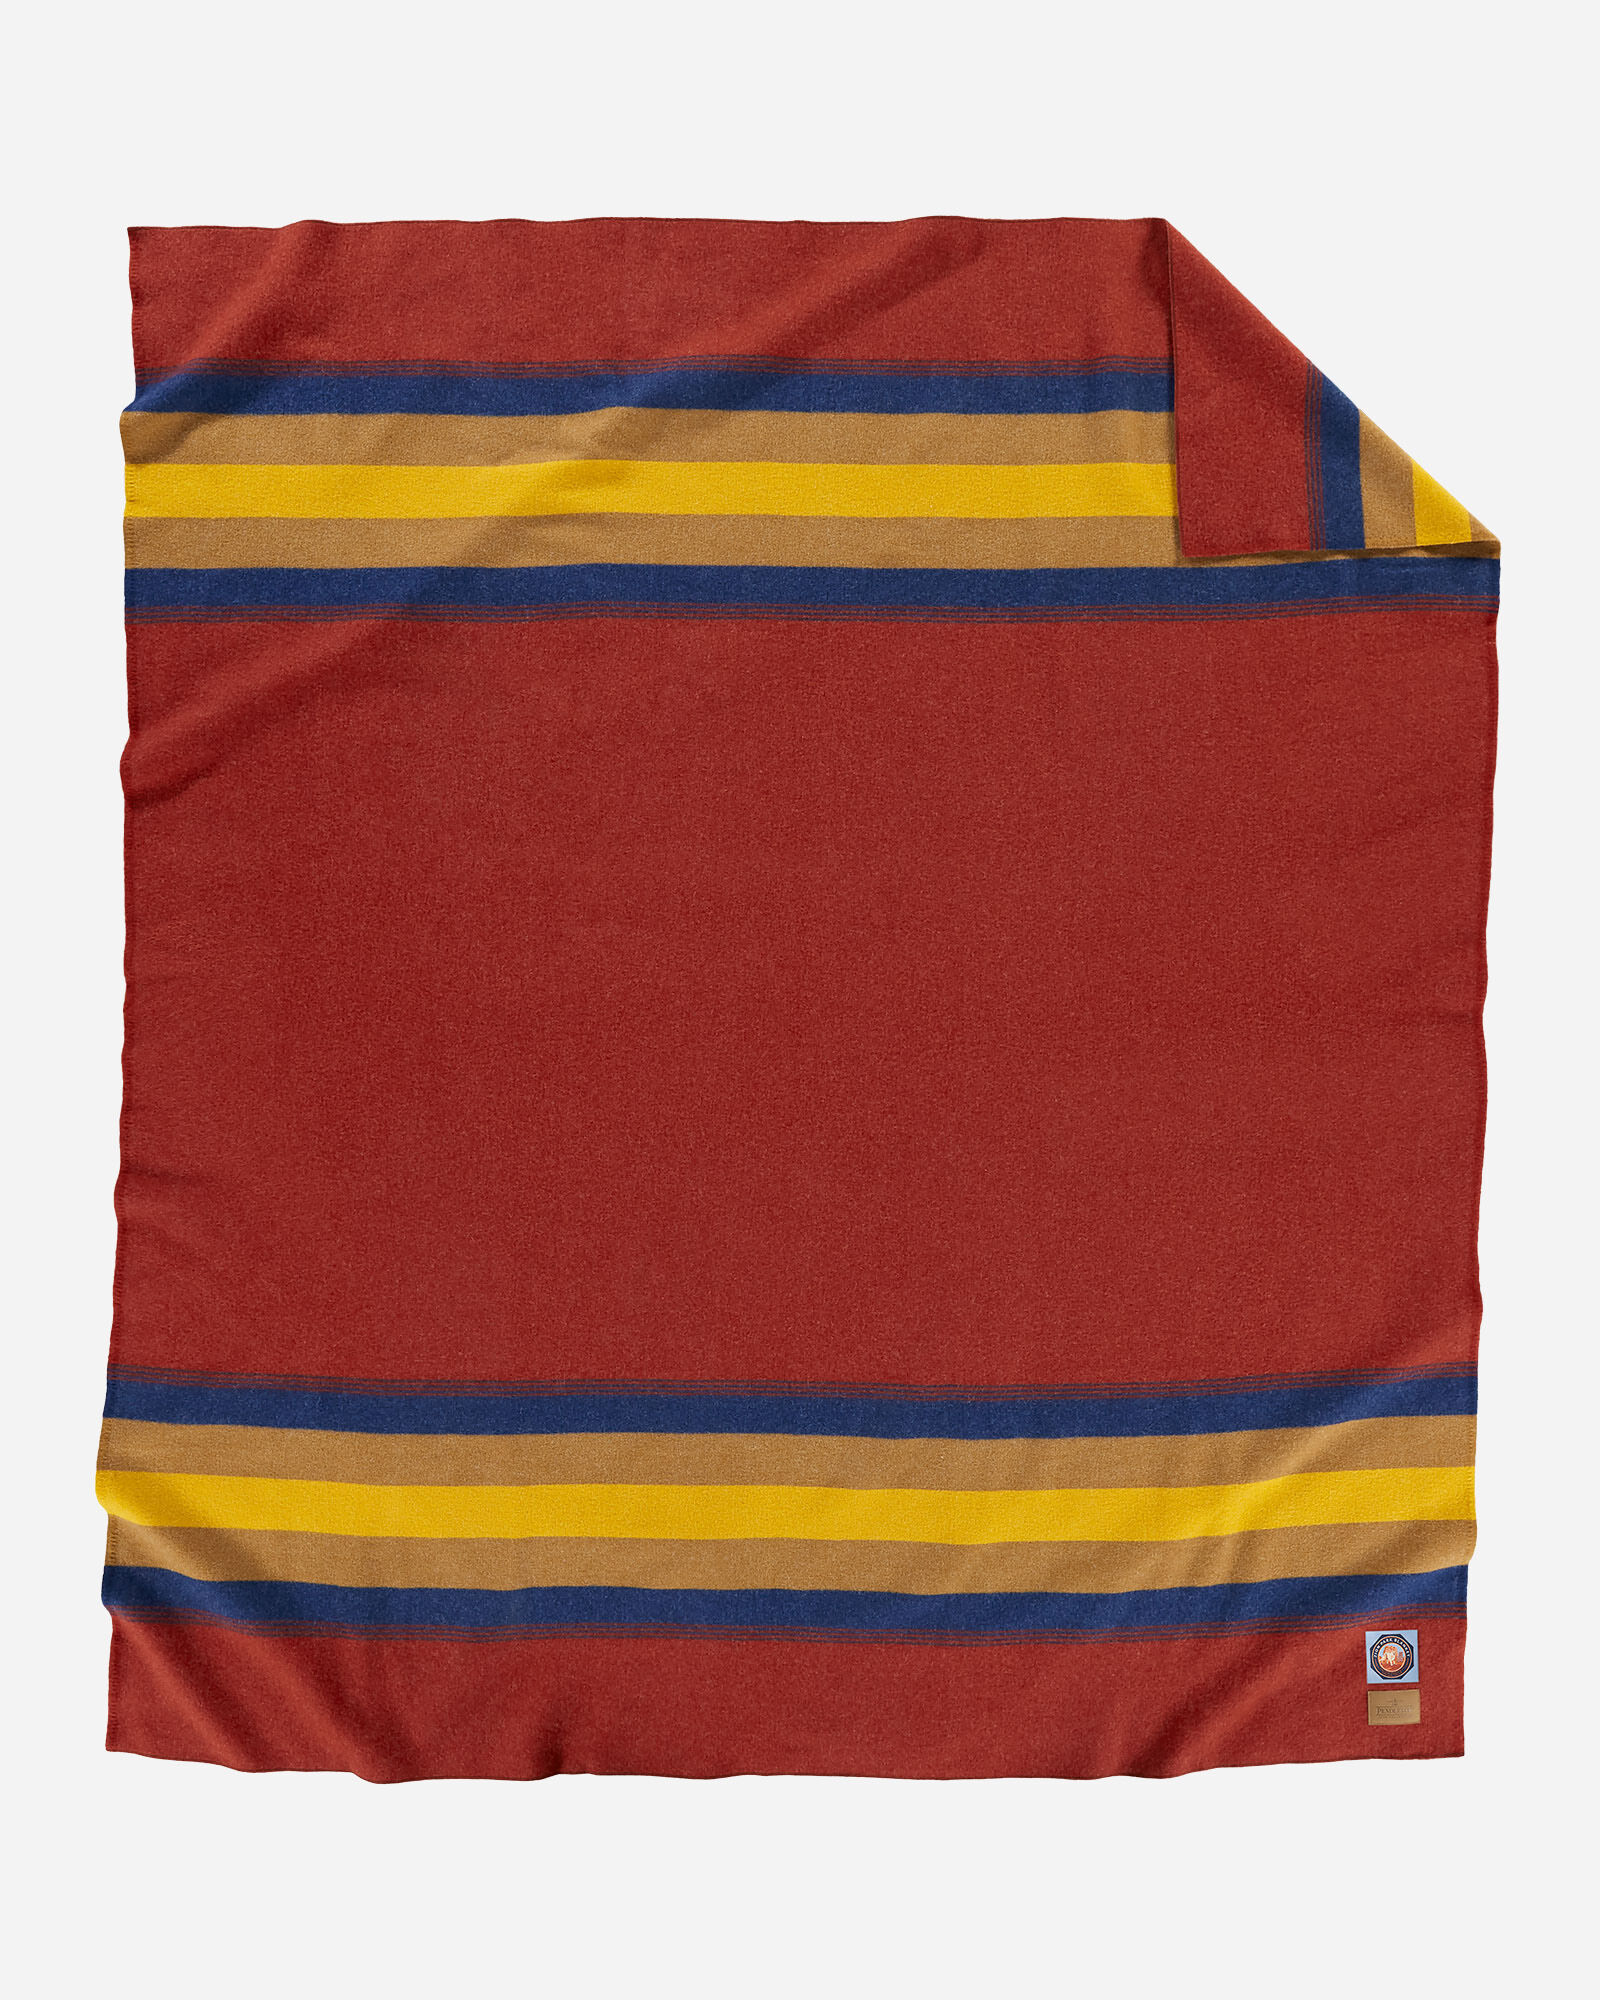 Pendleton Zion National park blanket in deep rusty red.